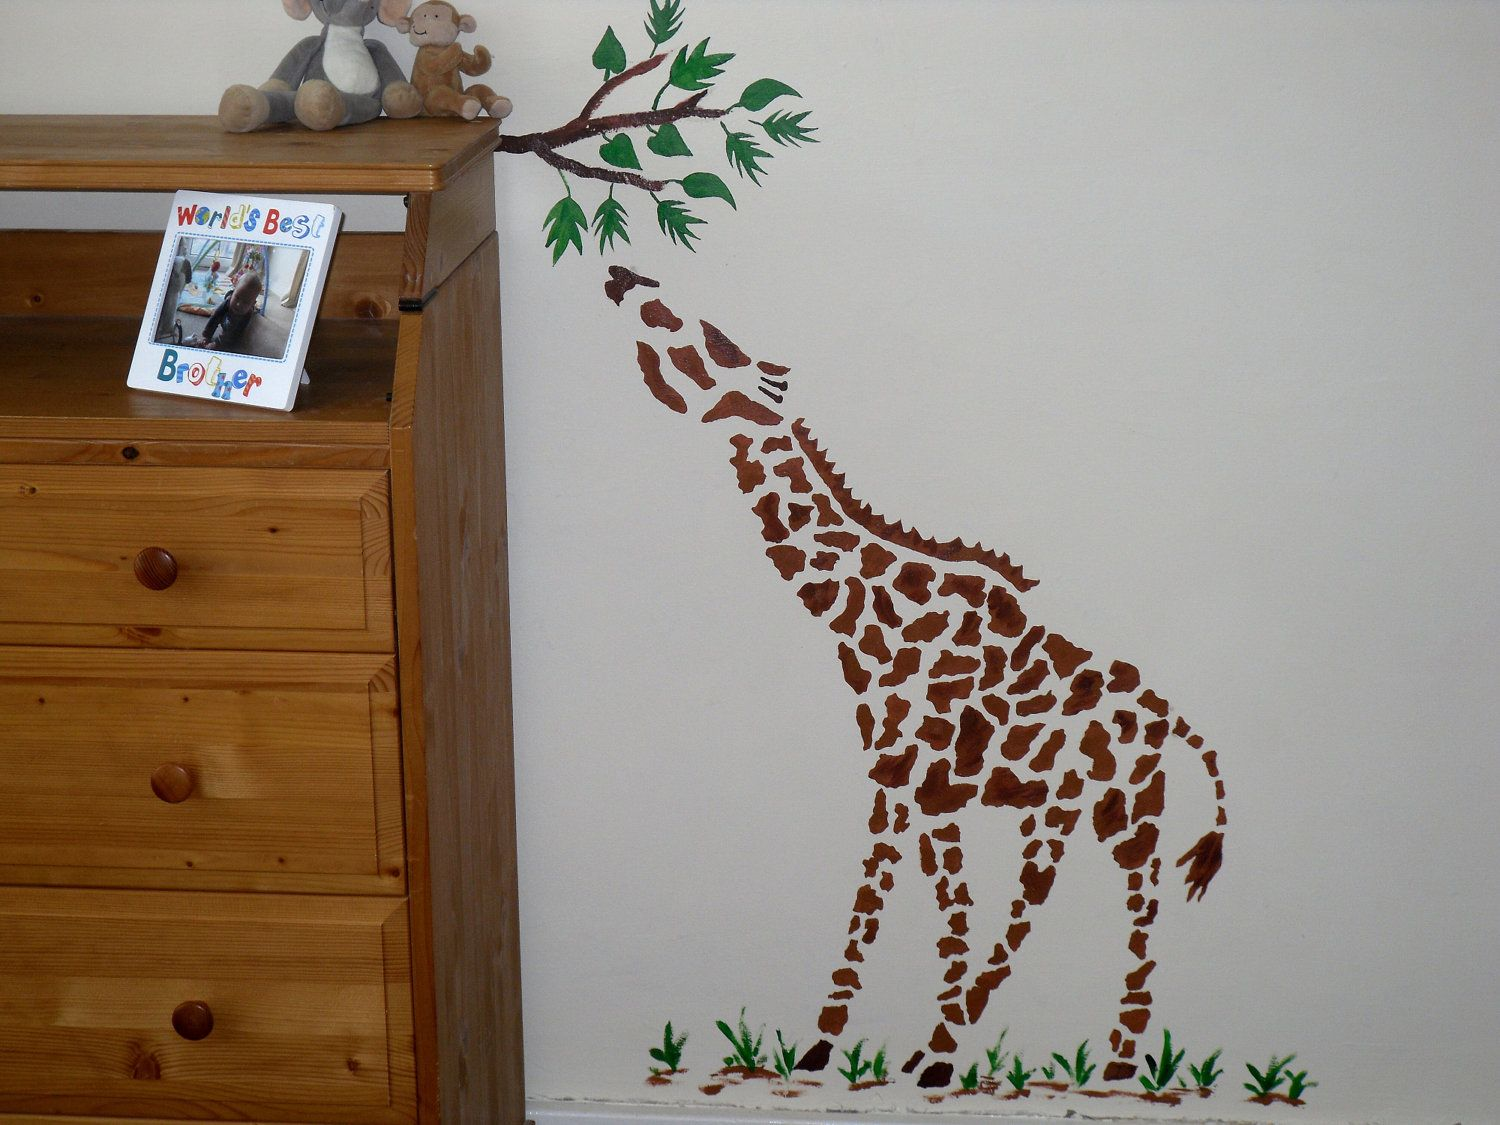 Large giraffe wall stencil childrens bedroom decor nursery wall large giraffe wall stencil childrens bedroom decor nursery wall art kids stencils room decoration amipublicfo Gallery